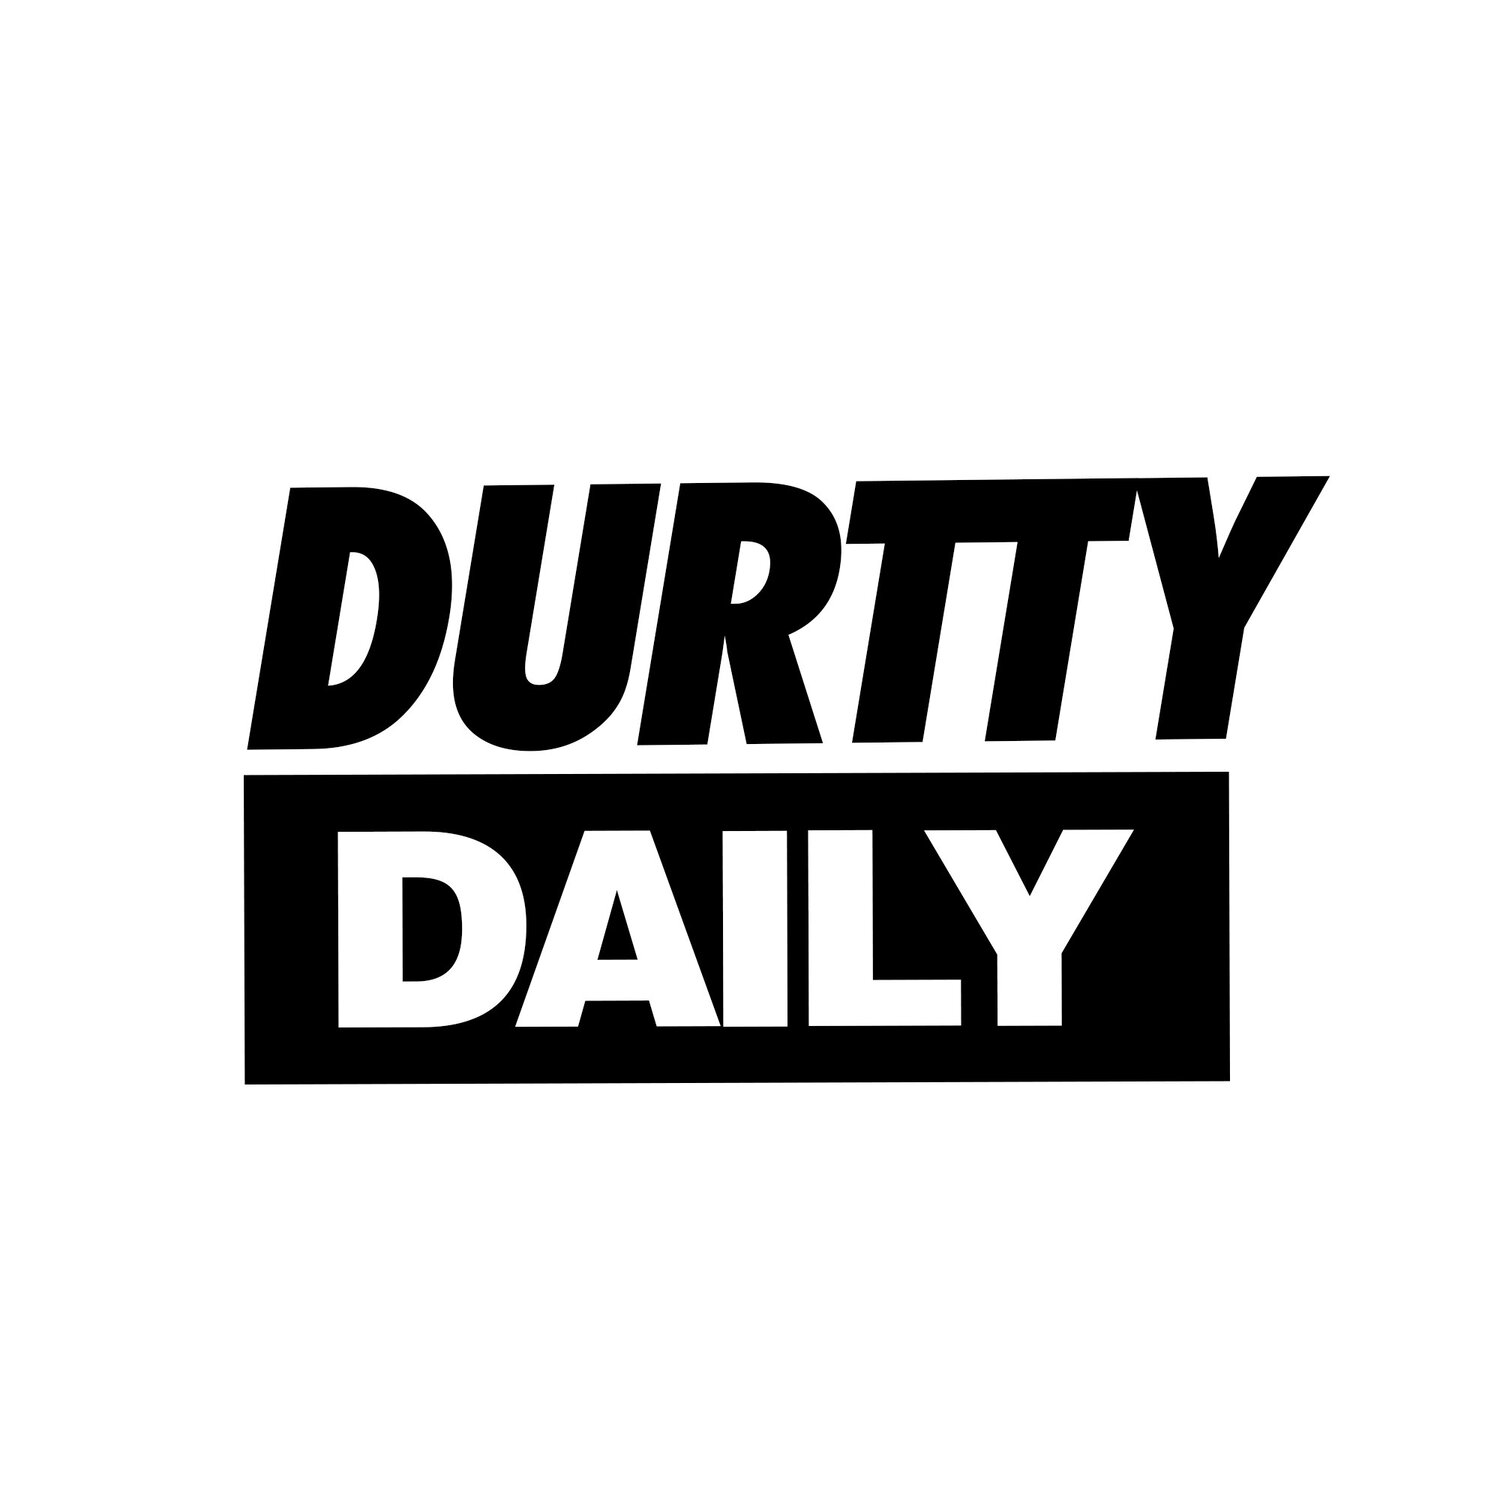 Durtty Daily